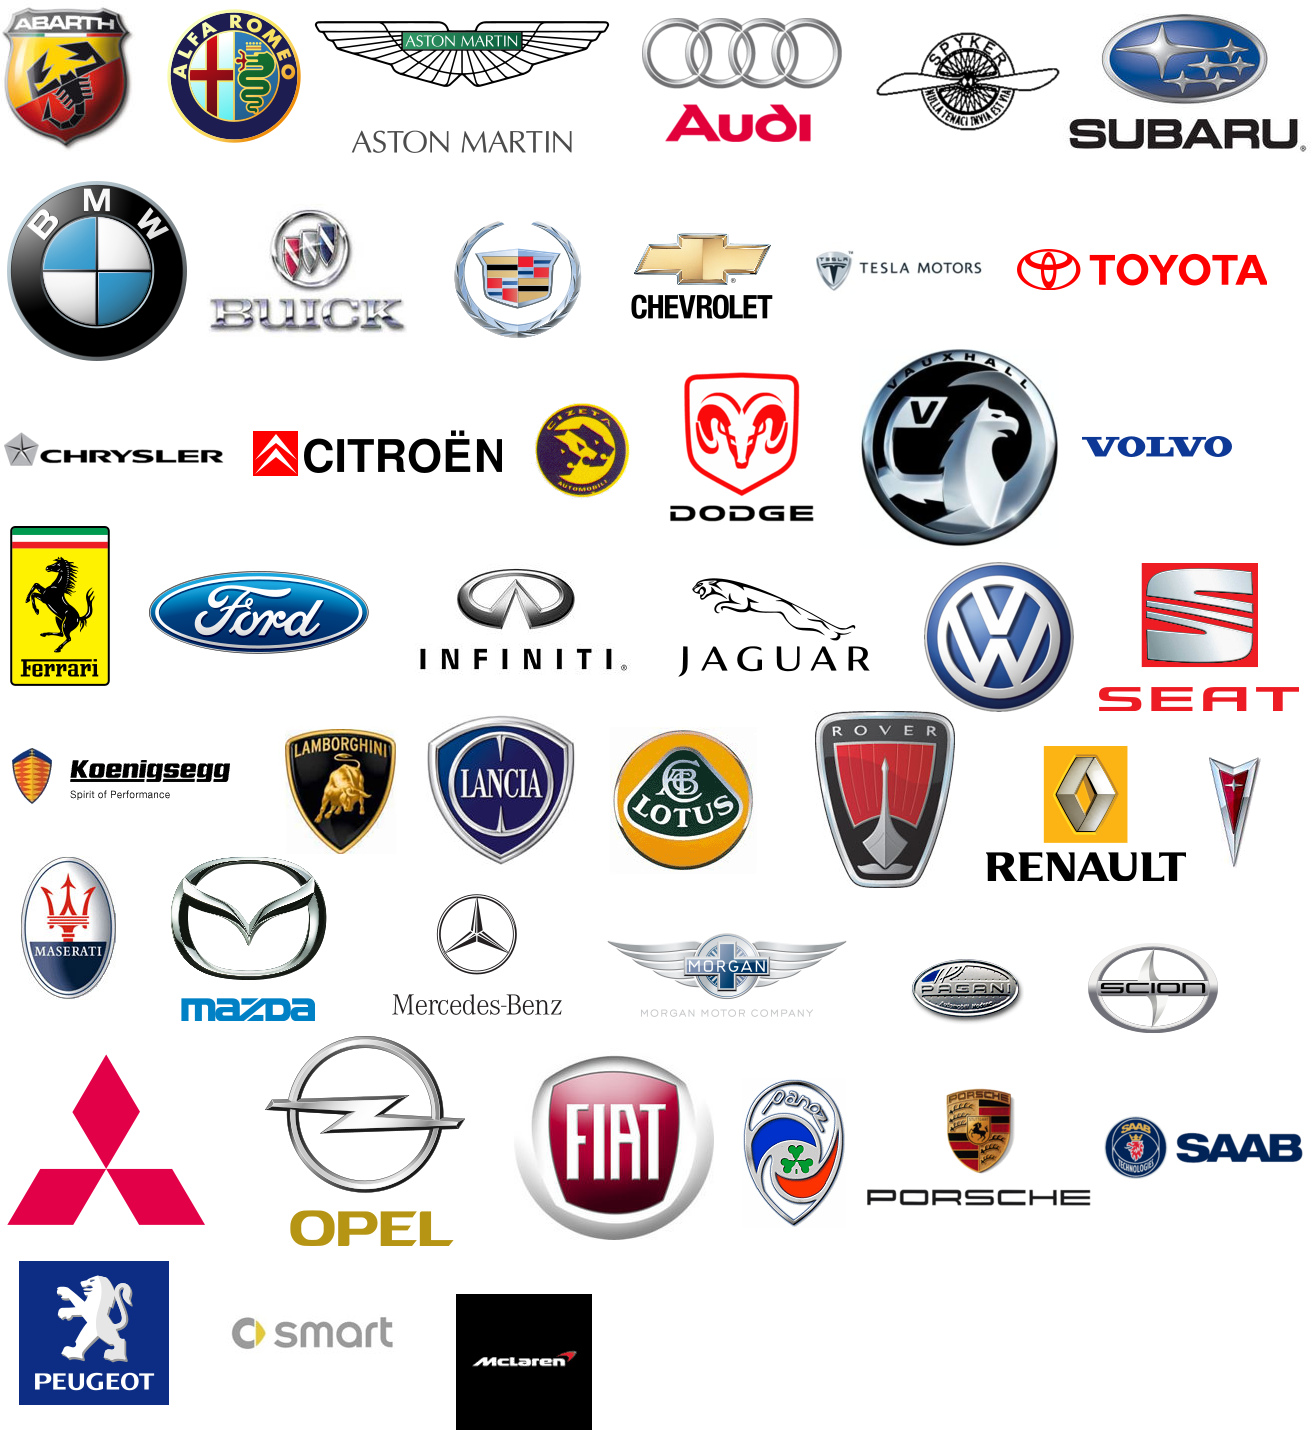 Car Brands Starting With P >> 18 Company S Of Auto Part Icons Images Auto Parts Company